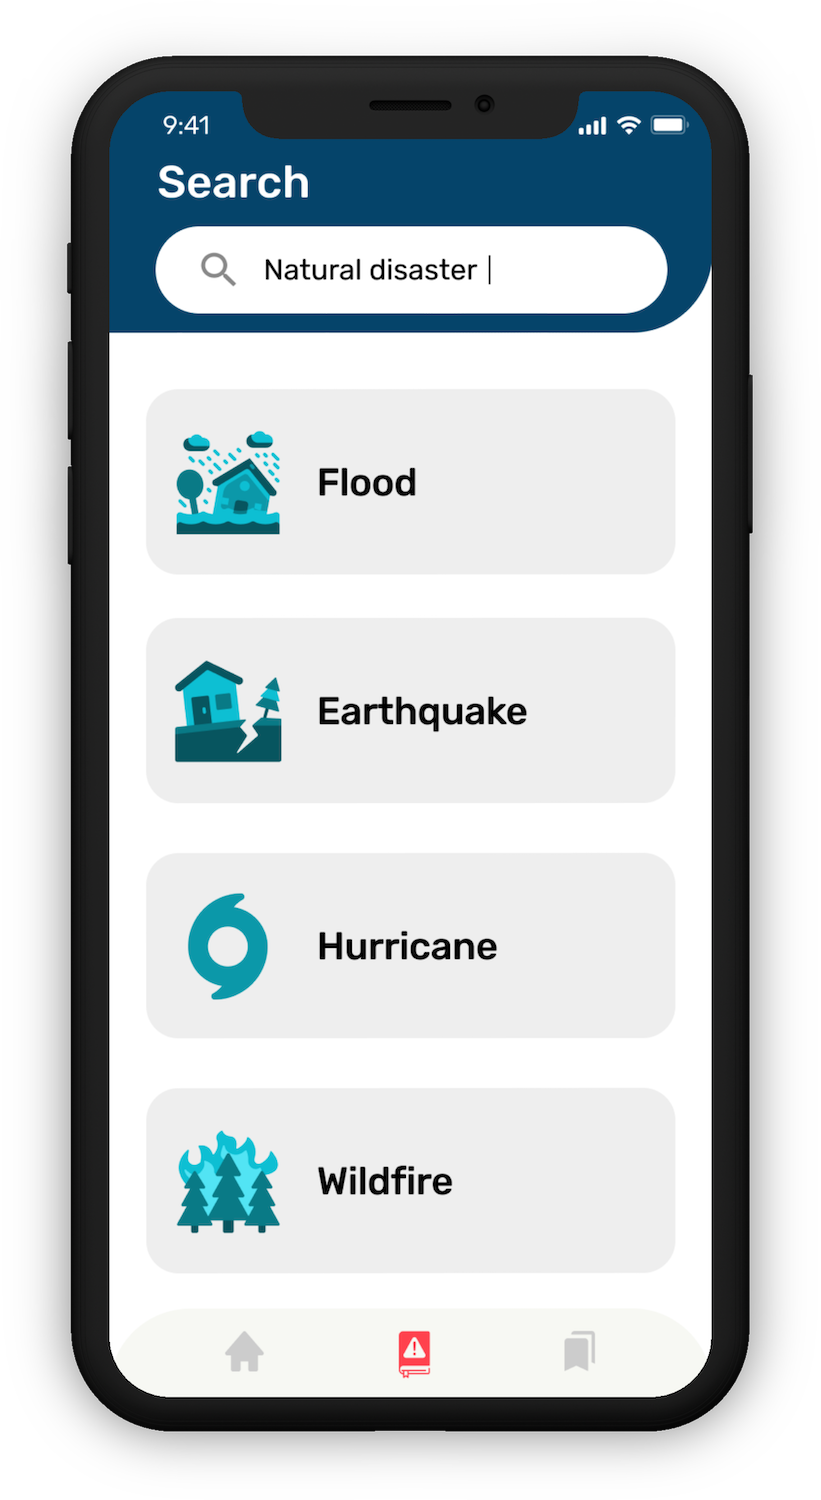 """Searching for """"natural disasters"""" in the HazAdapt app and getting Flood, Earthquake, Hurricane, and Wildfire as the top search results."""